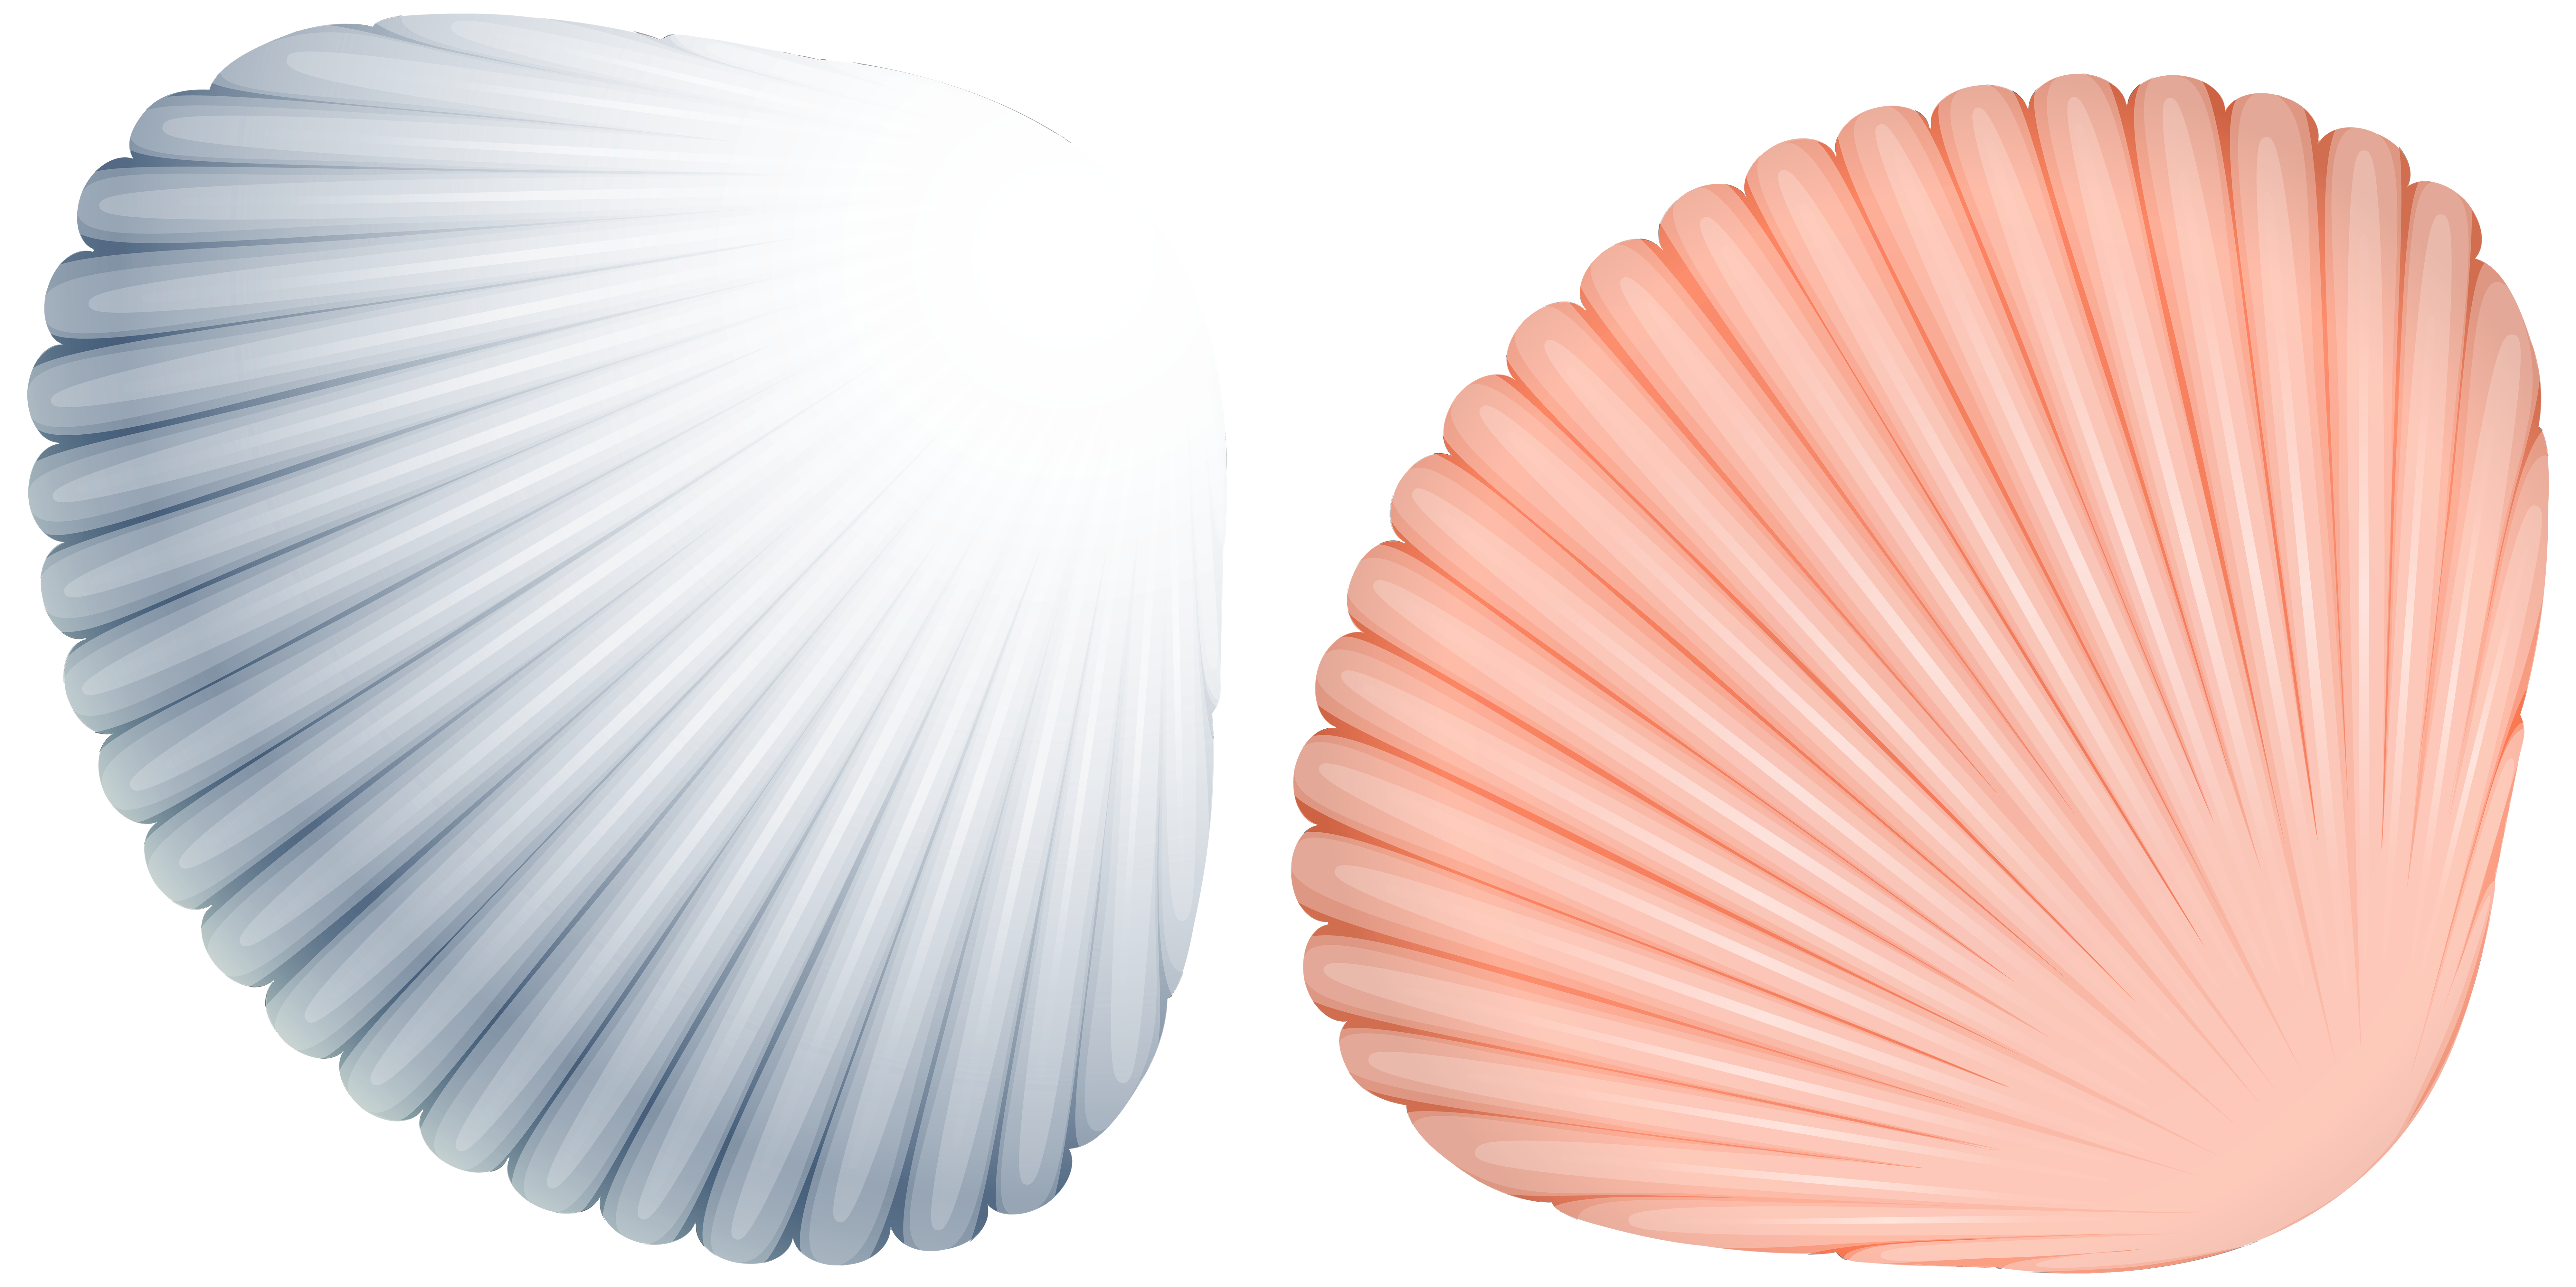 Shells png image gallery. Shell clipart blue sea